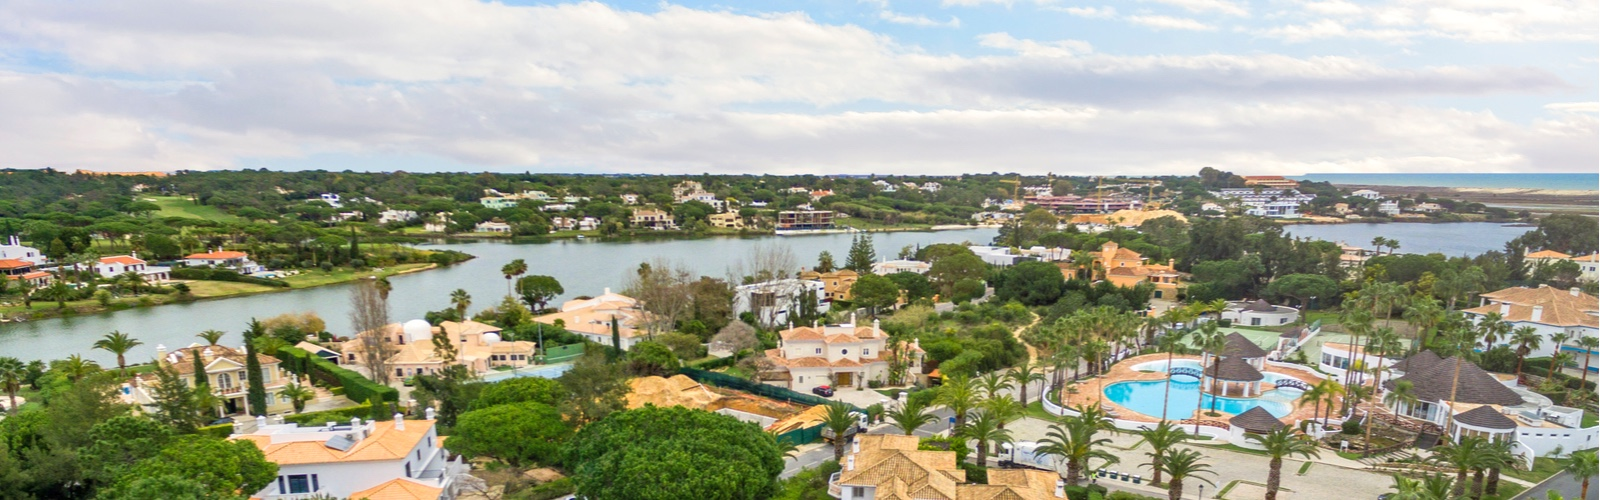 Almancil - QUINTA DO LAGO